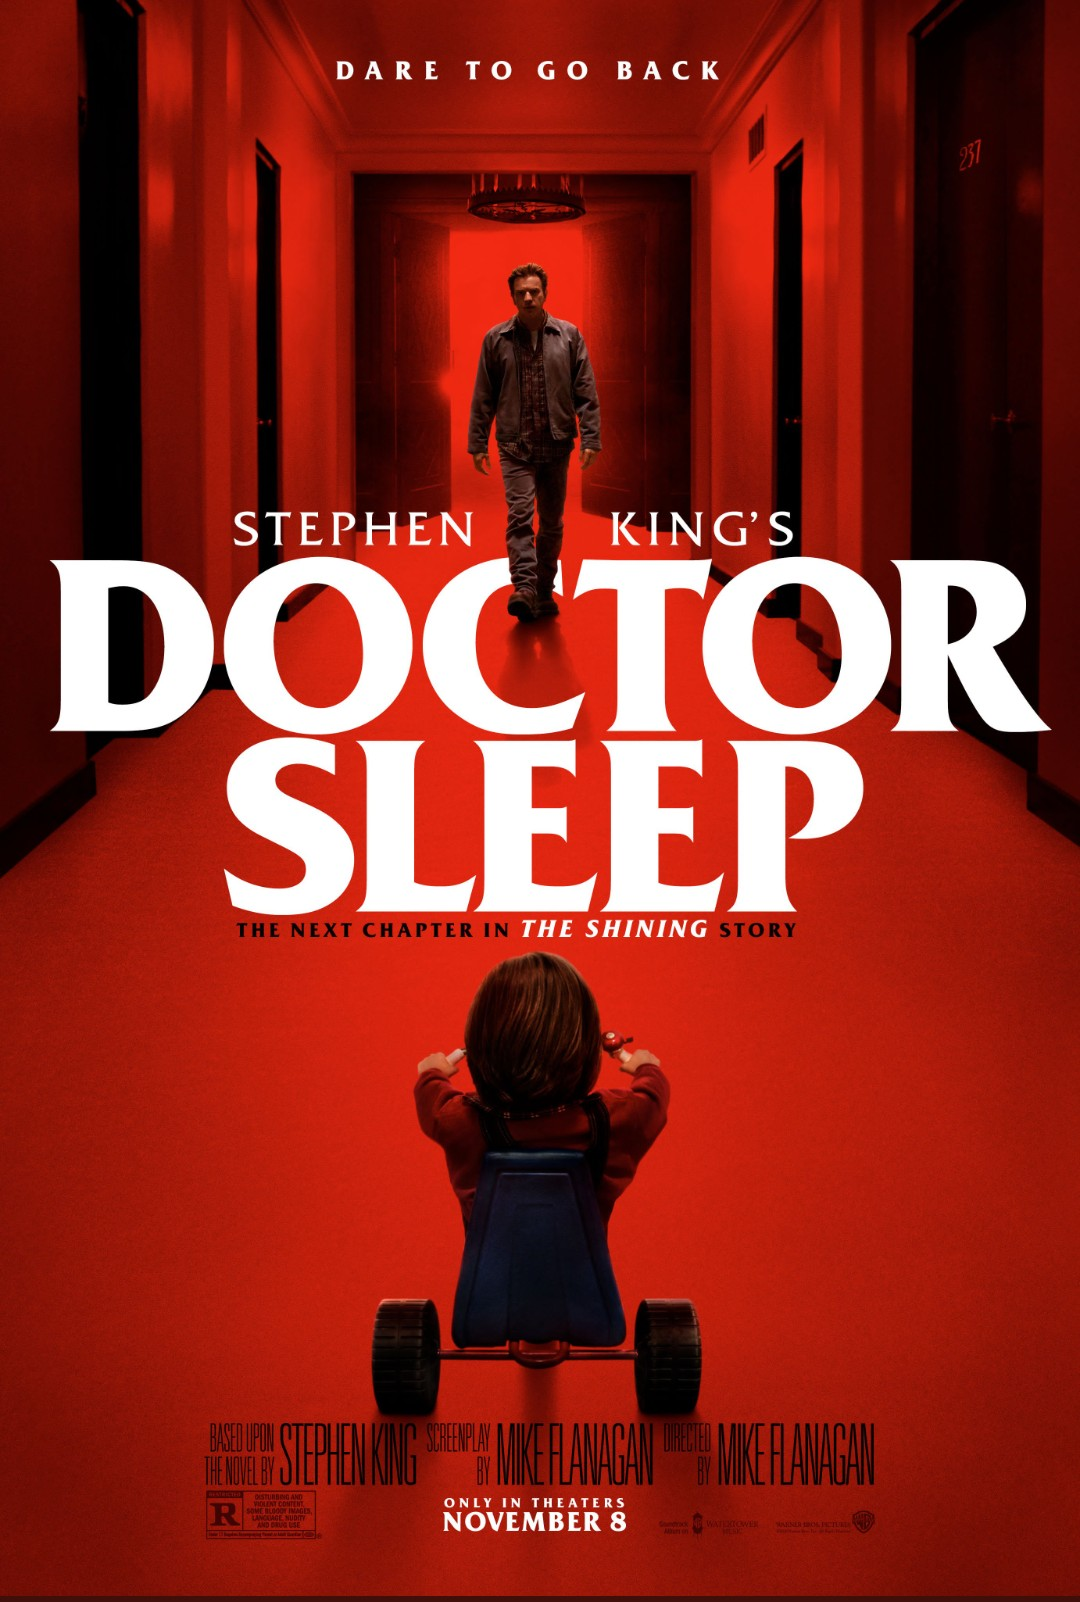 Doctor Sleep(2019) - Movie Trailer Video